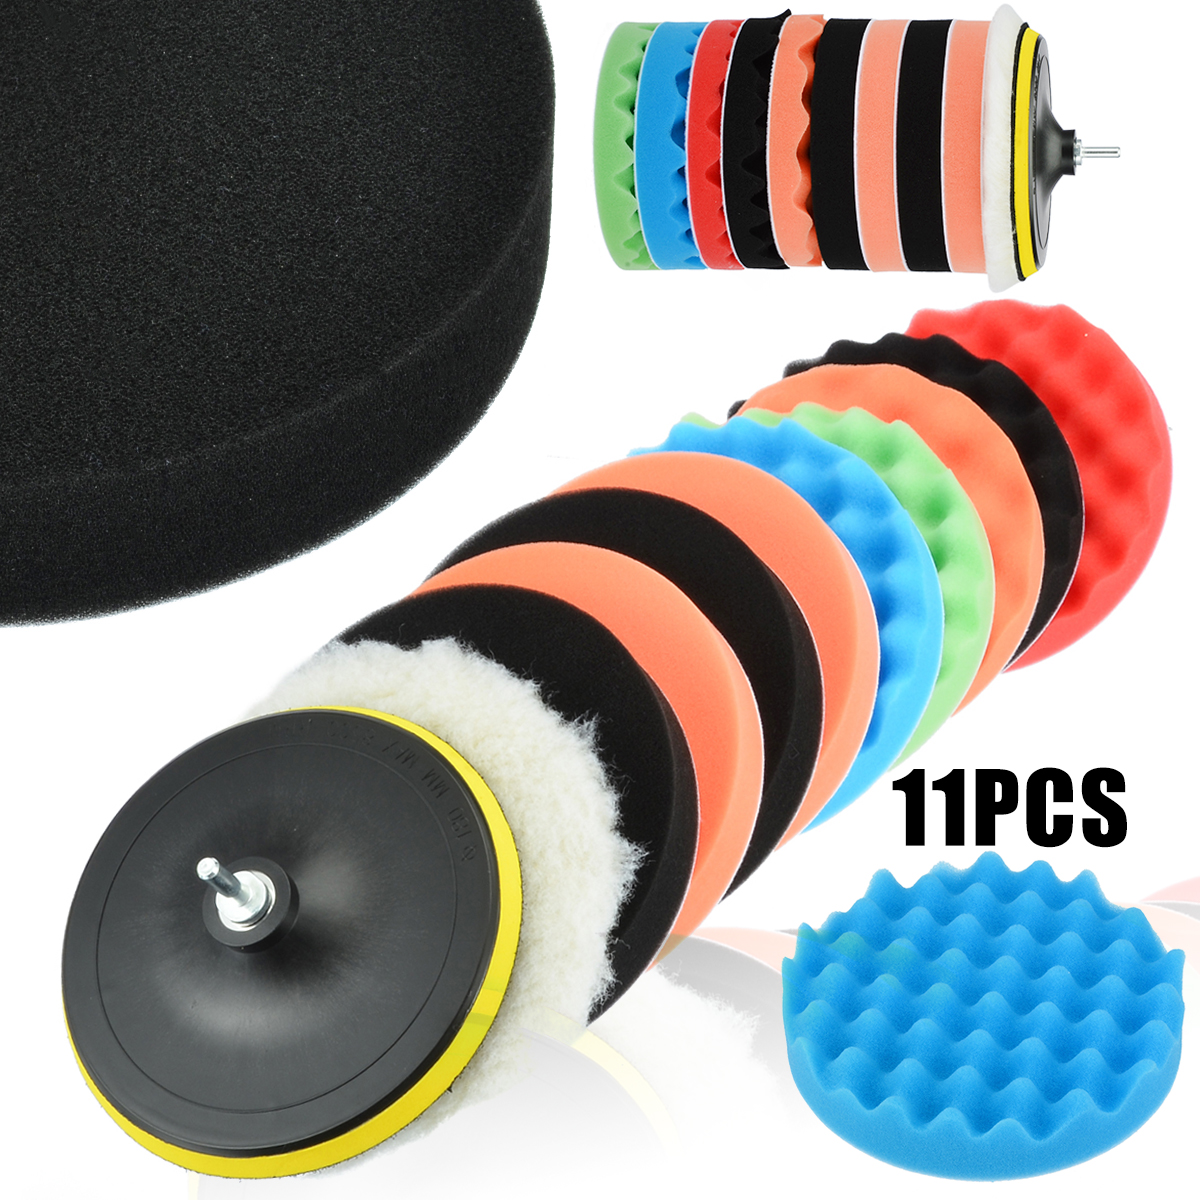 11pcs 7 quot Polishing Pad Waxing Buffing Polishing Sponge Pads Drill Adapter Kit For Auto Car Polisher Maintenance Mayitr in Polishing Pads from Tools